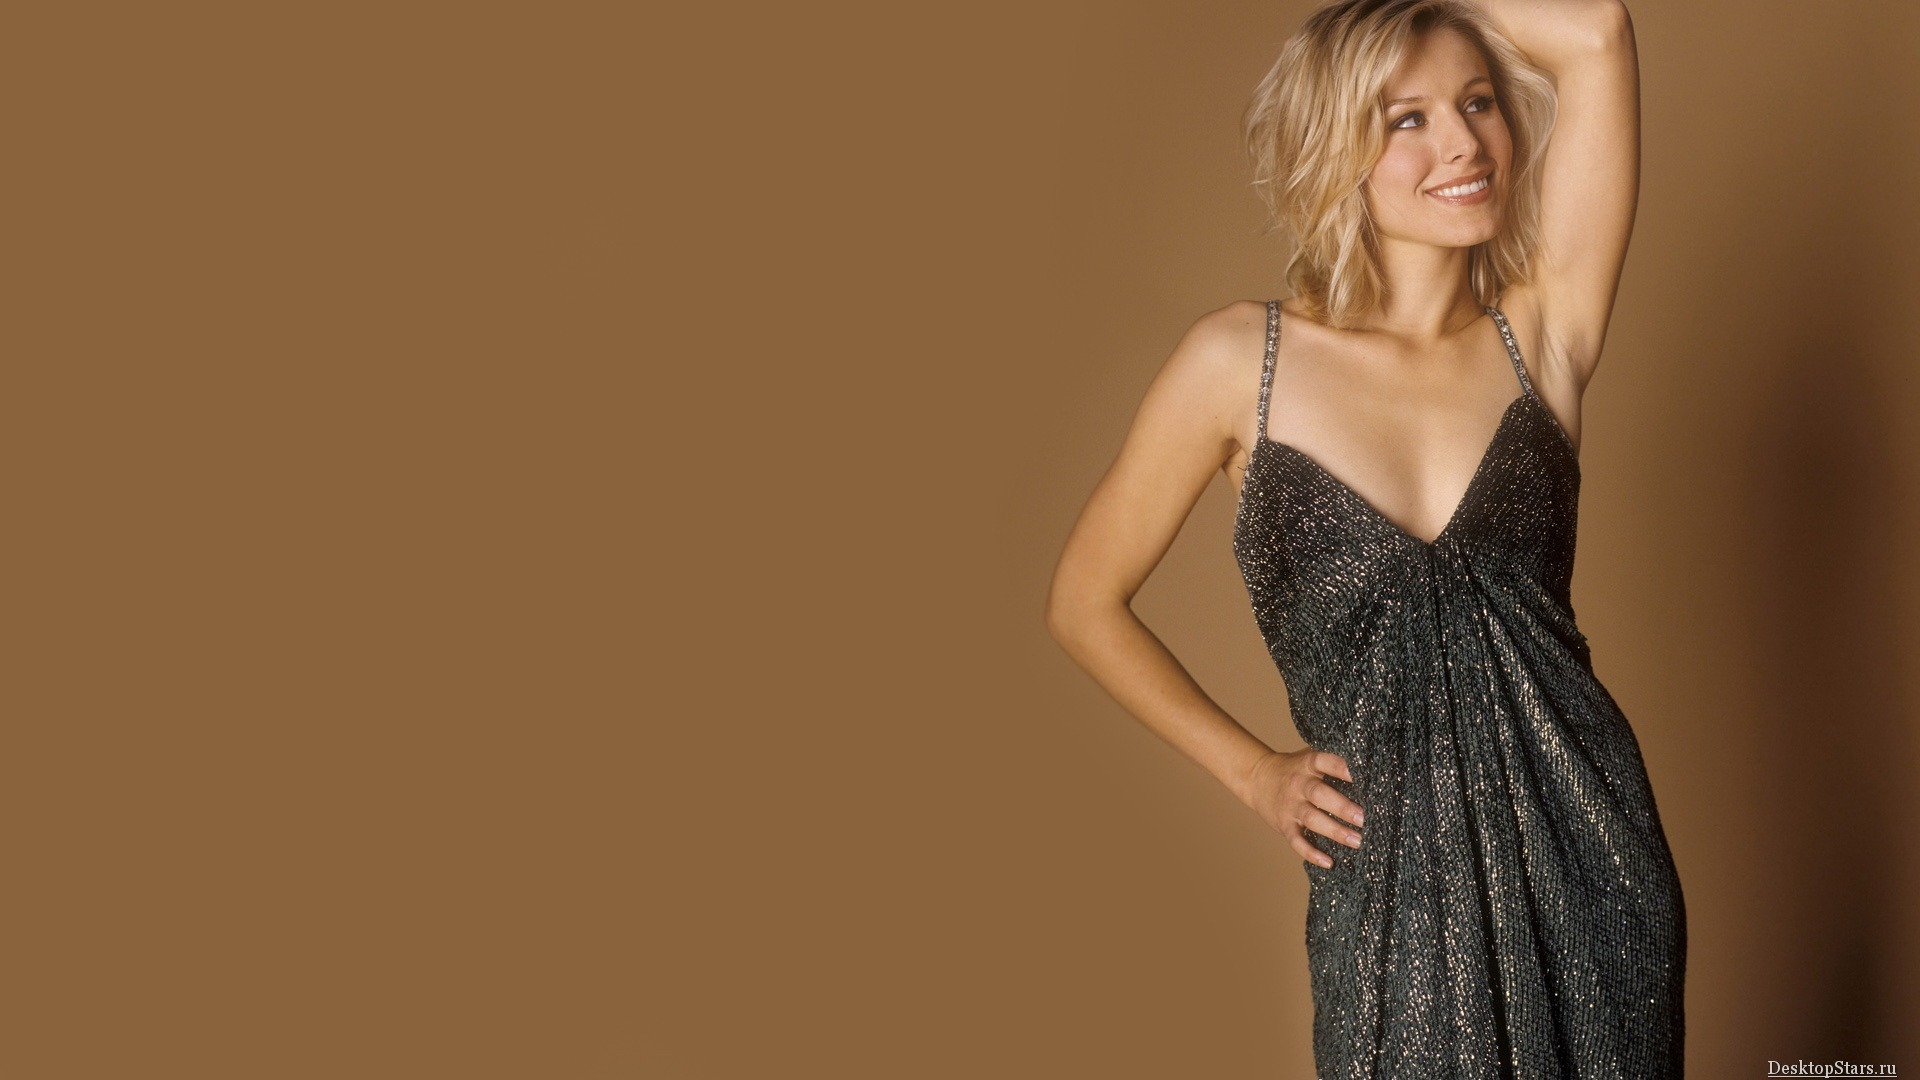 You Are Here  Home / Kristen Bell Wallpapers Wallpaper Download